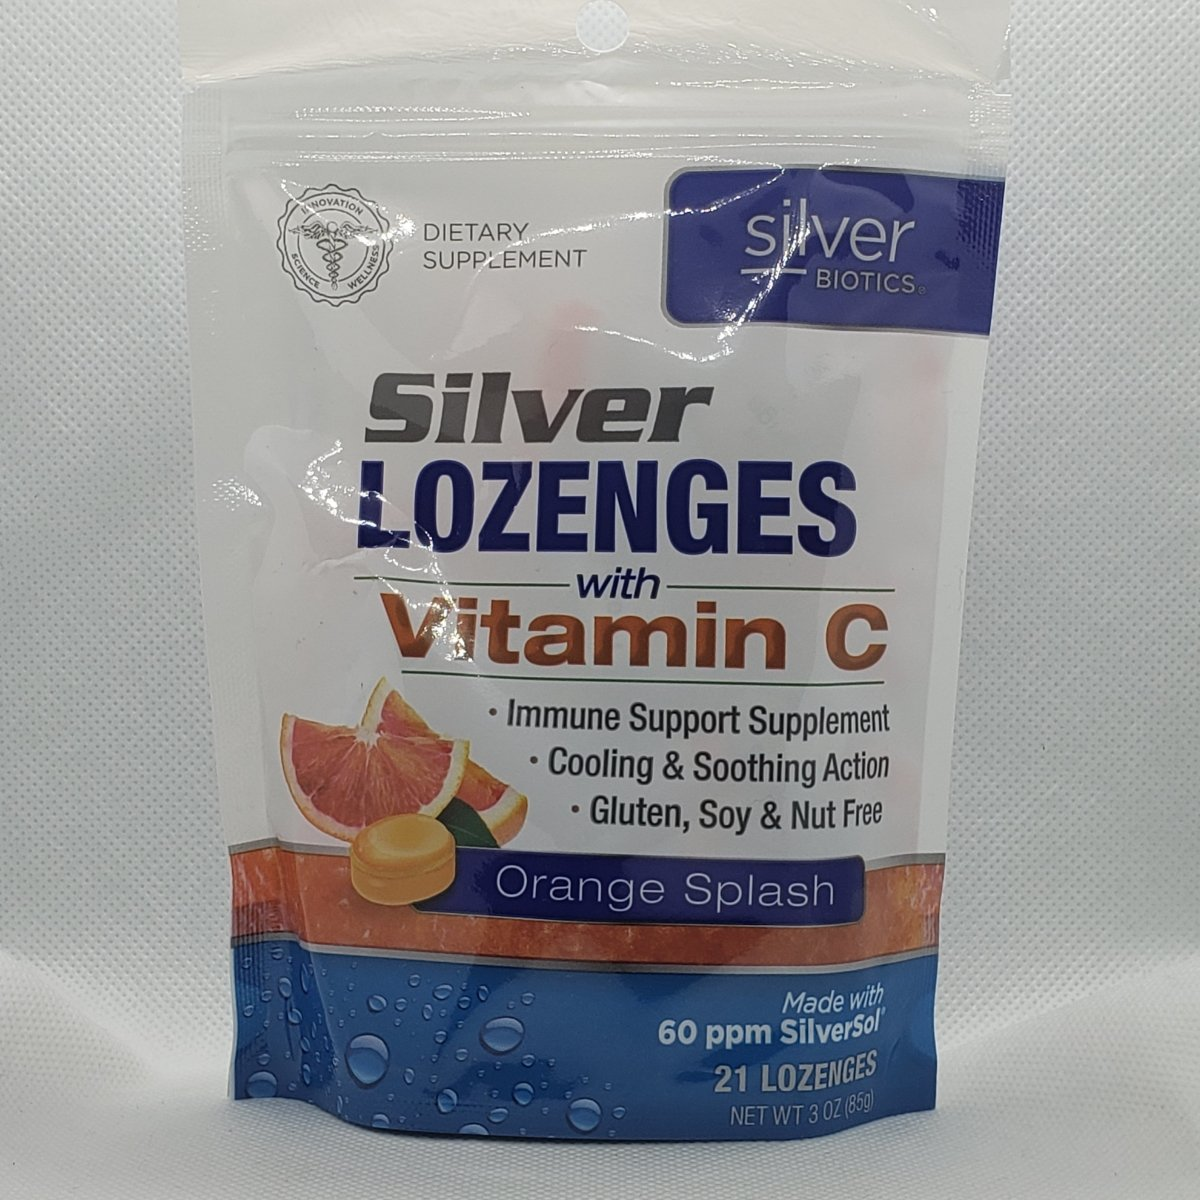 Silver Lozenges with Vitamin C - Orange Splash - 60ppm Silversol - 21 Lozenges